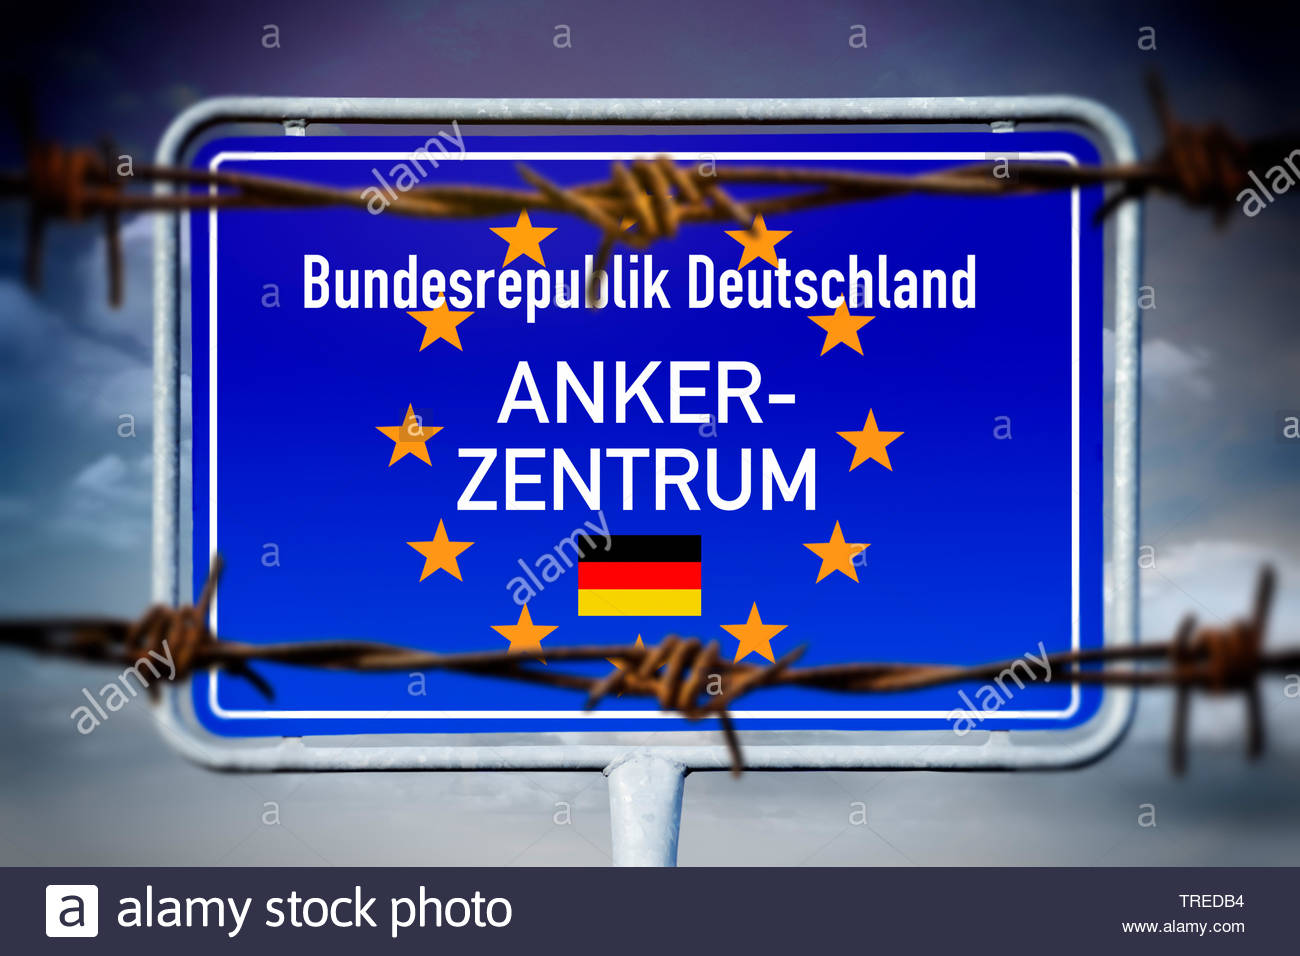 Boader sign of Germany with the stars of the European Union lettering ANKERZENTRUM (refugee centre) Stock Photo